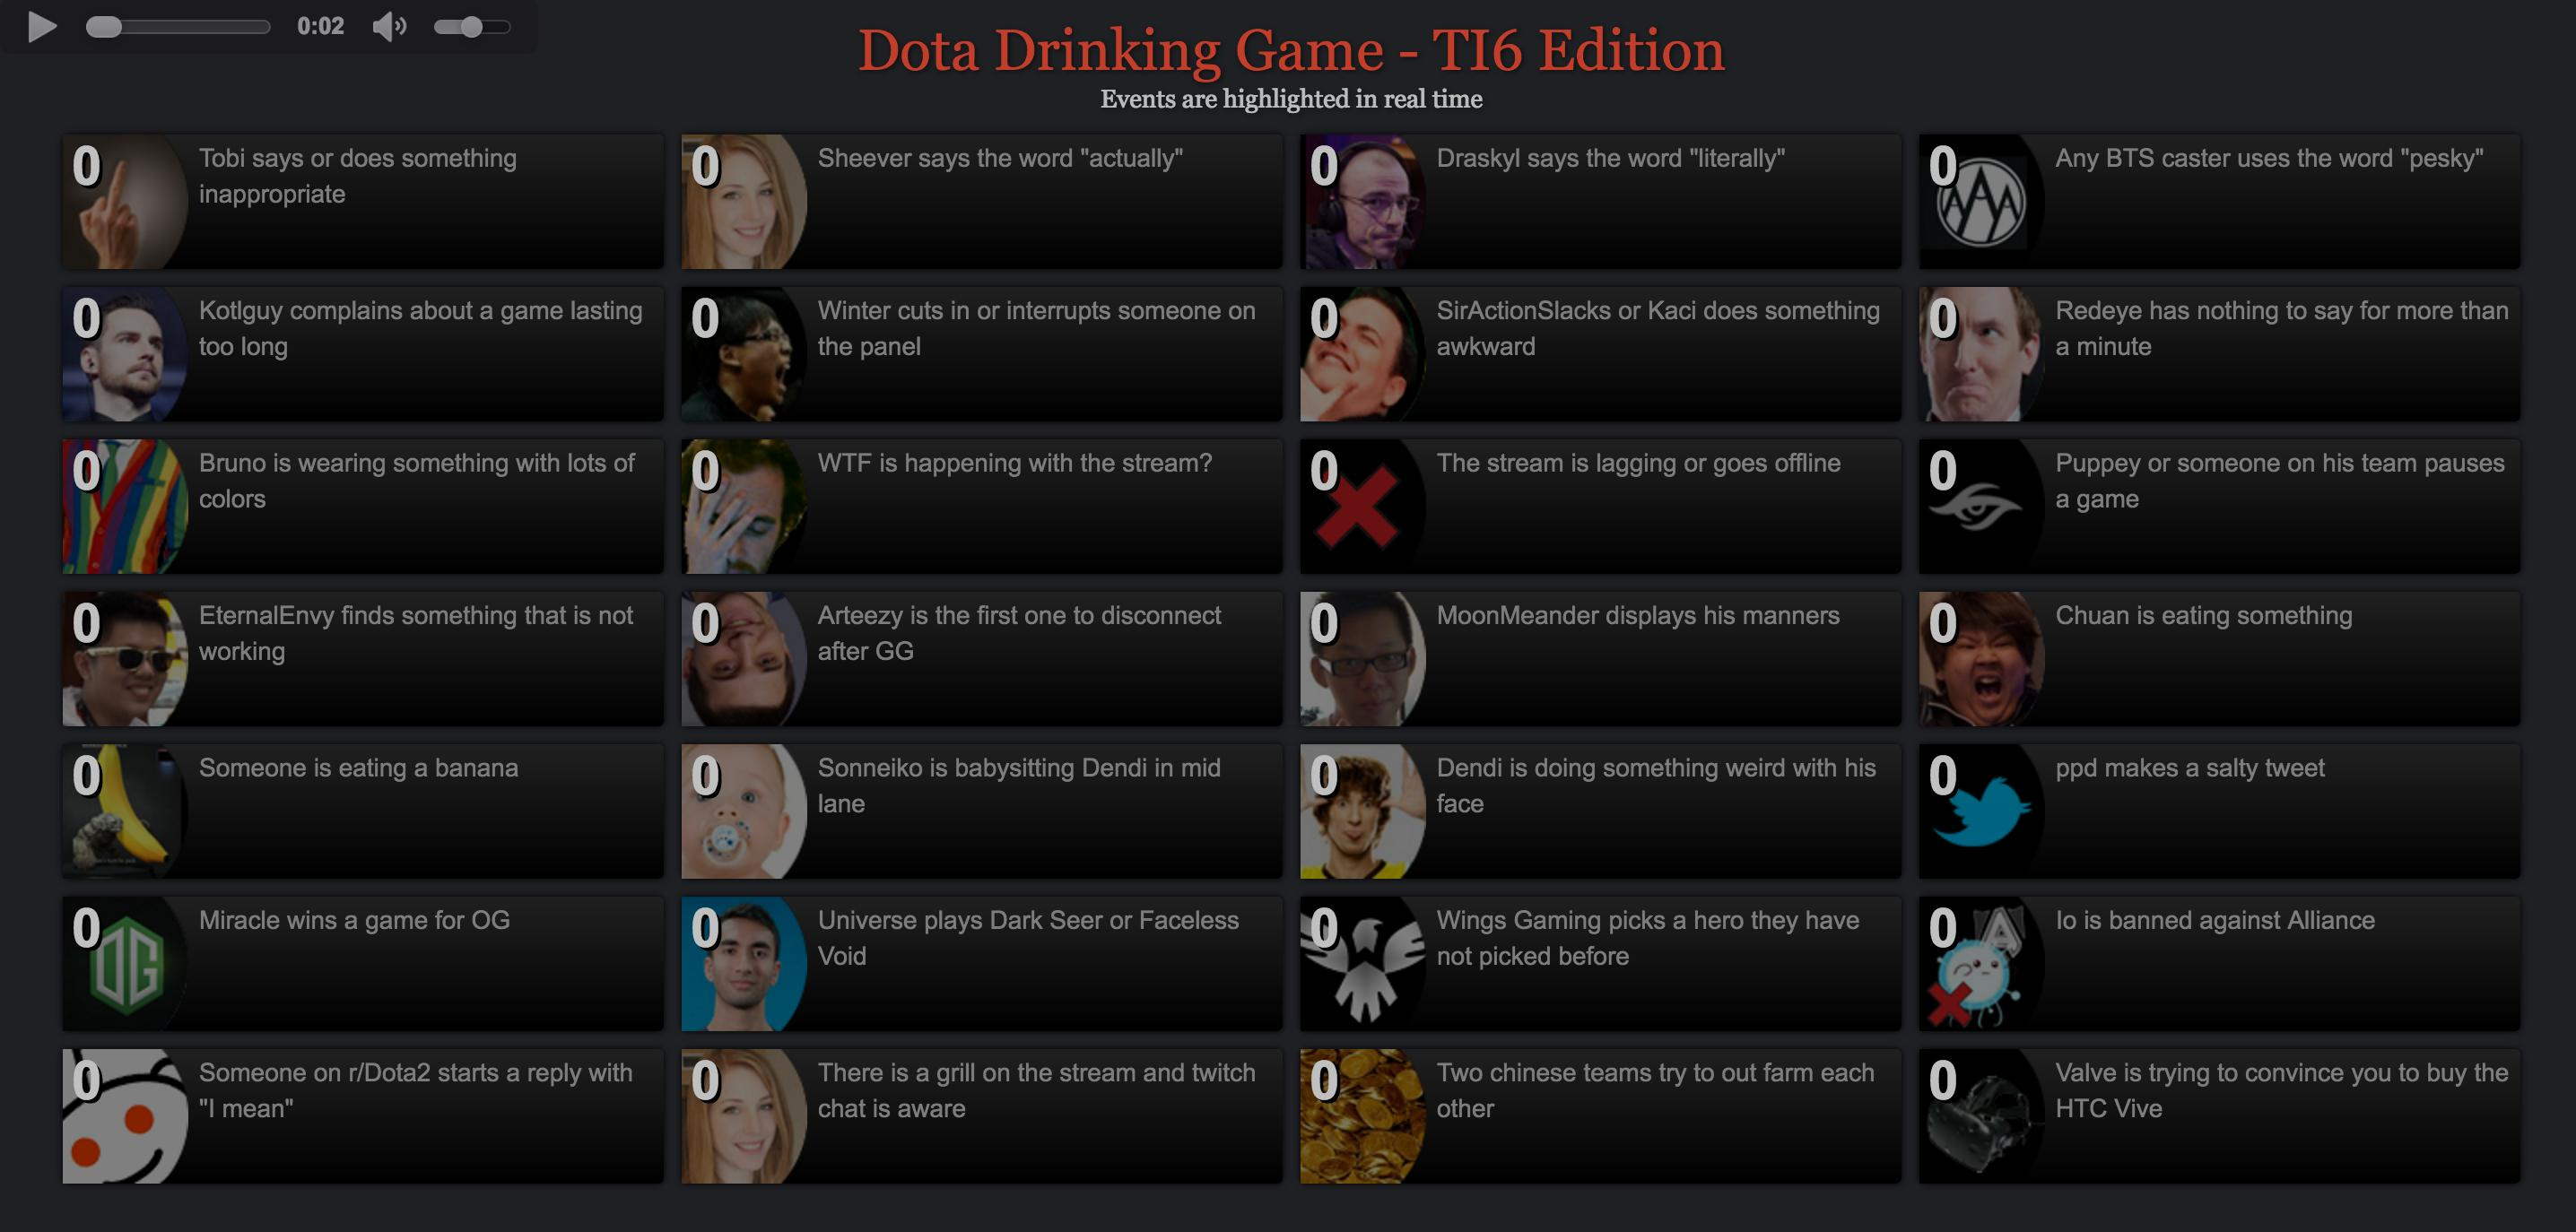 dota 2 drinking game ti6